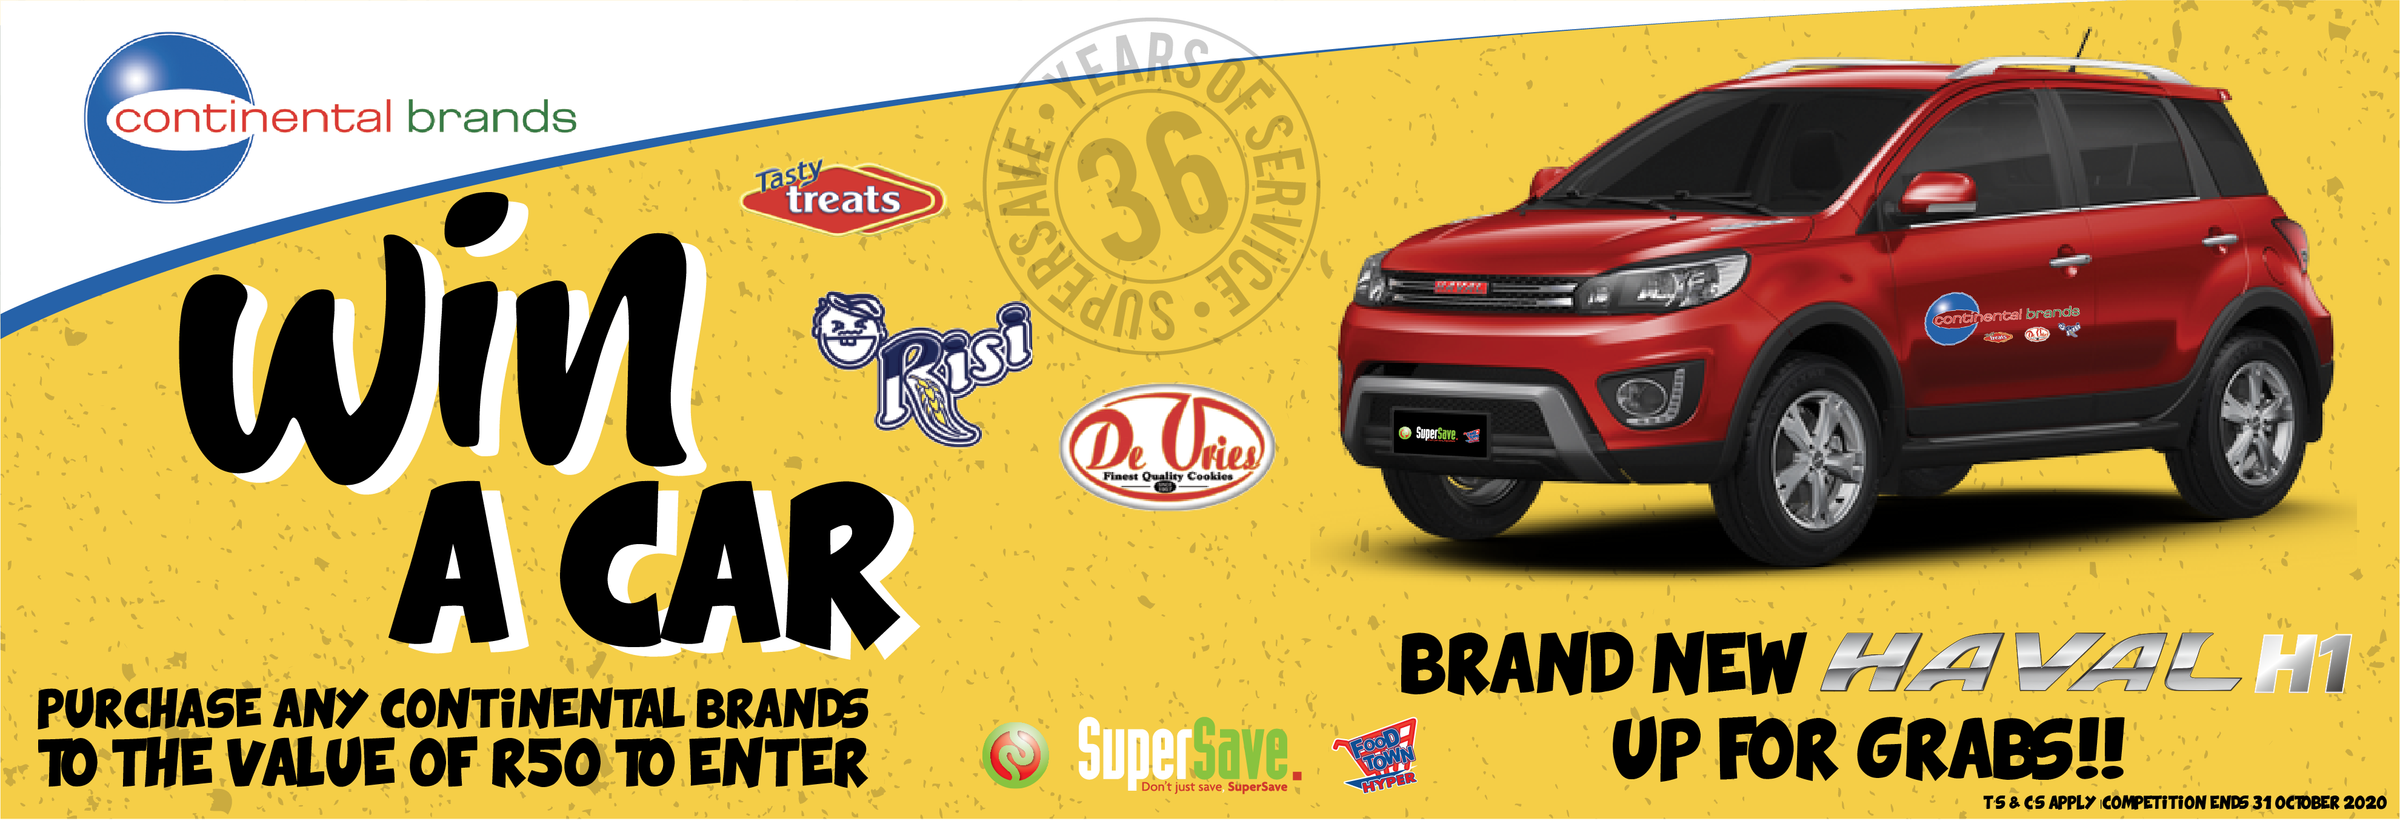 Supersave website banner win a car 01